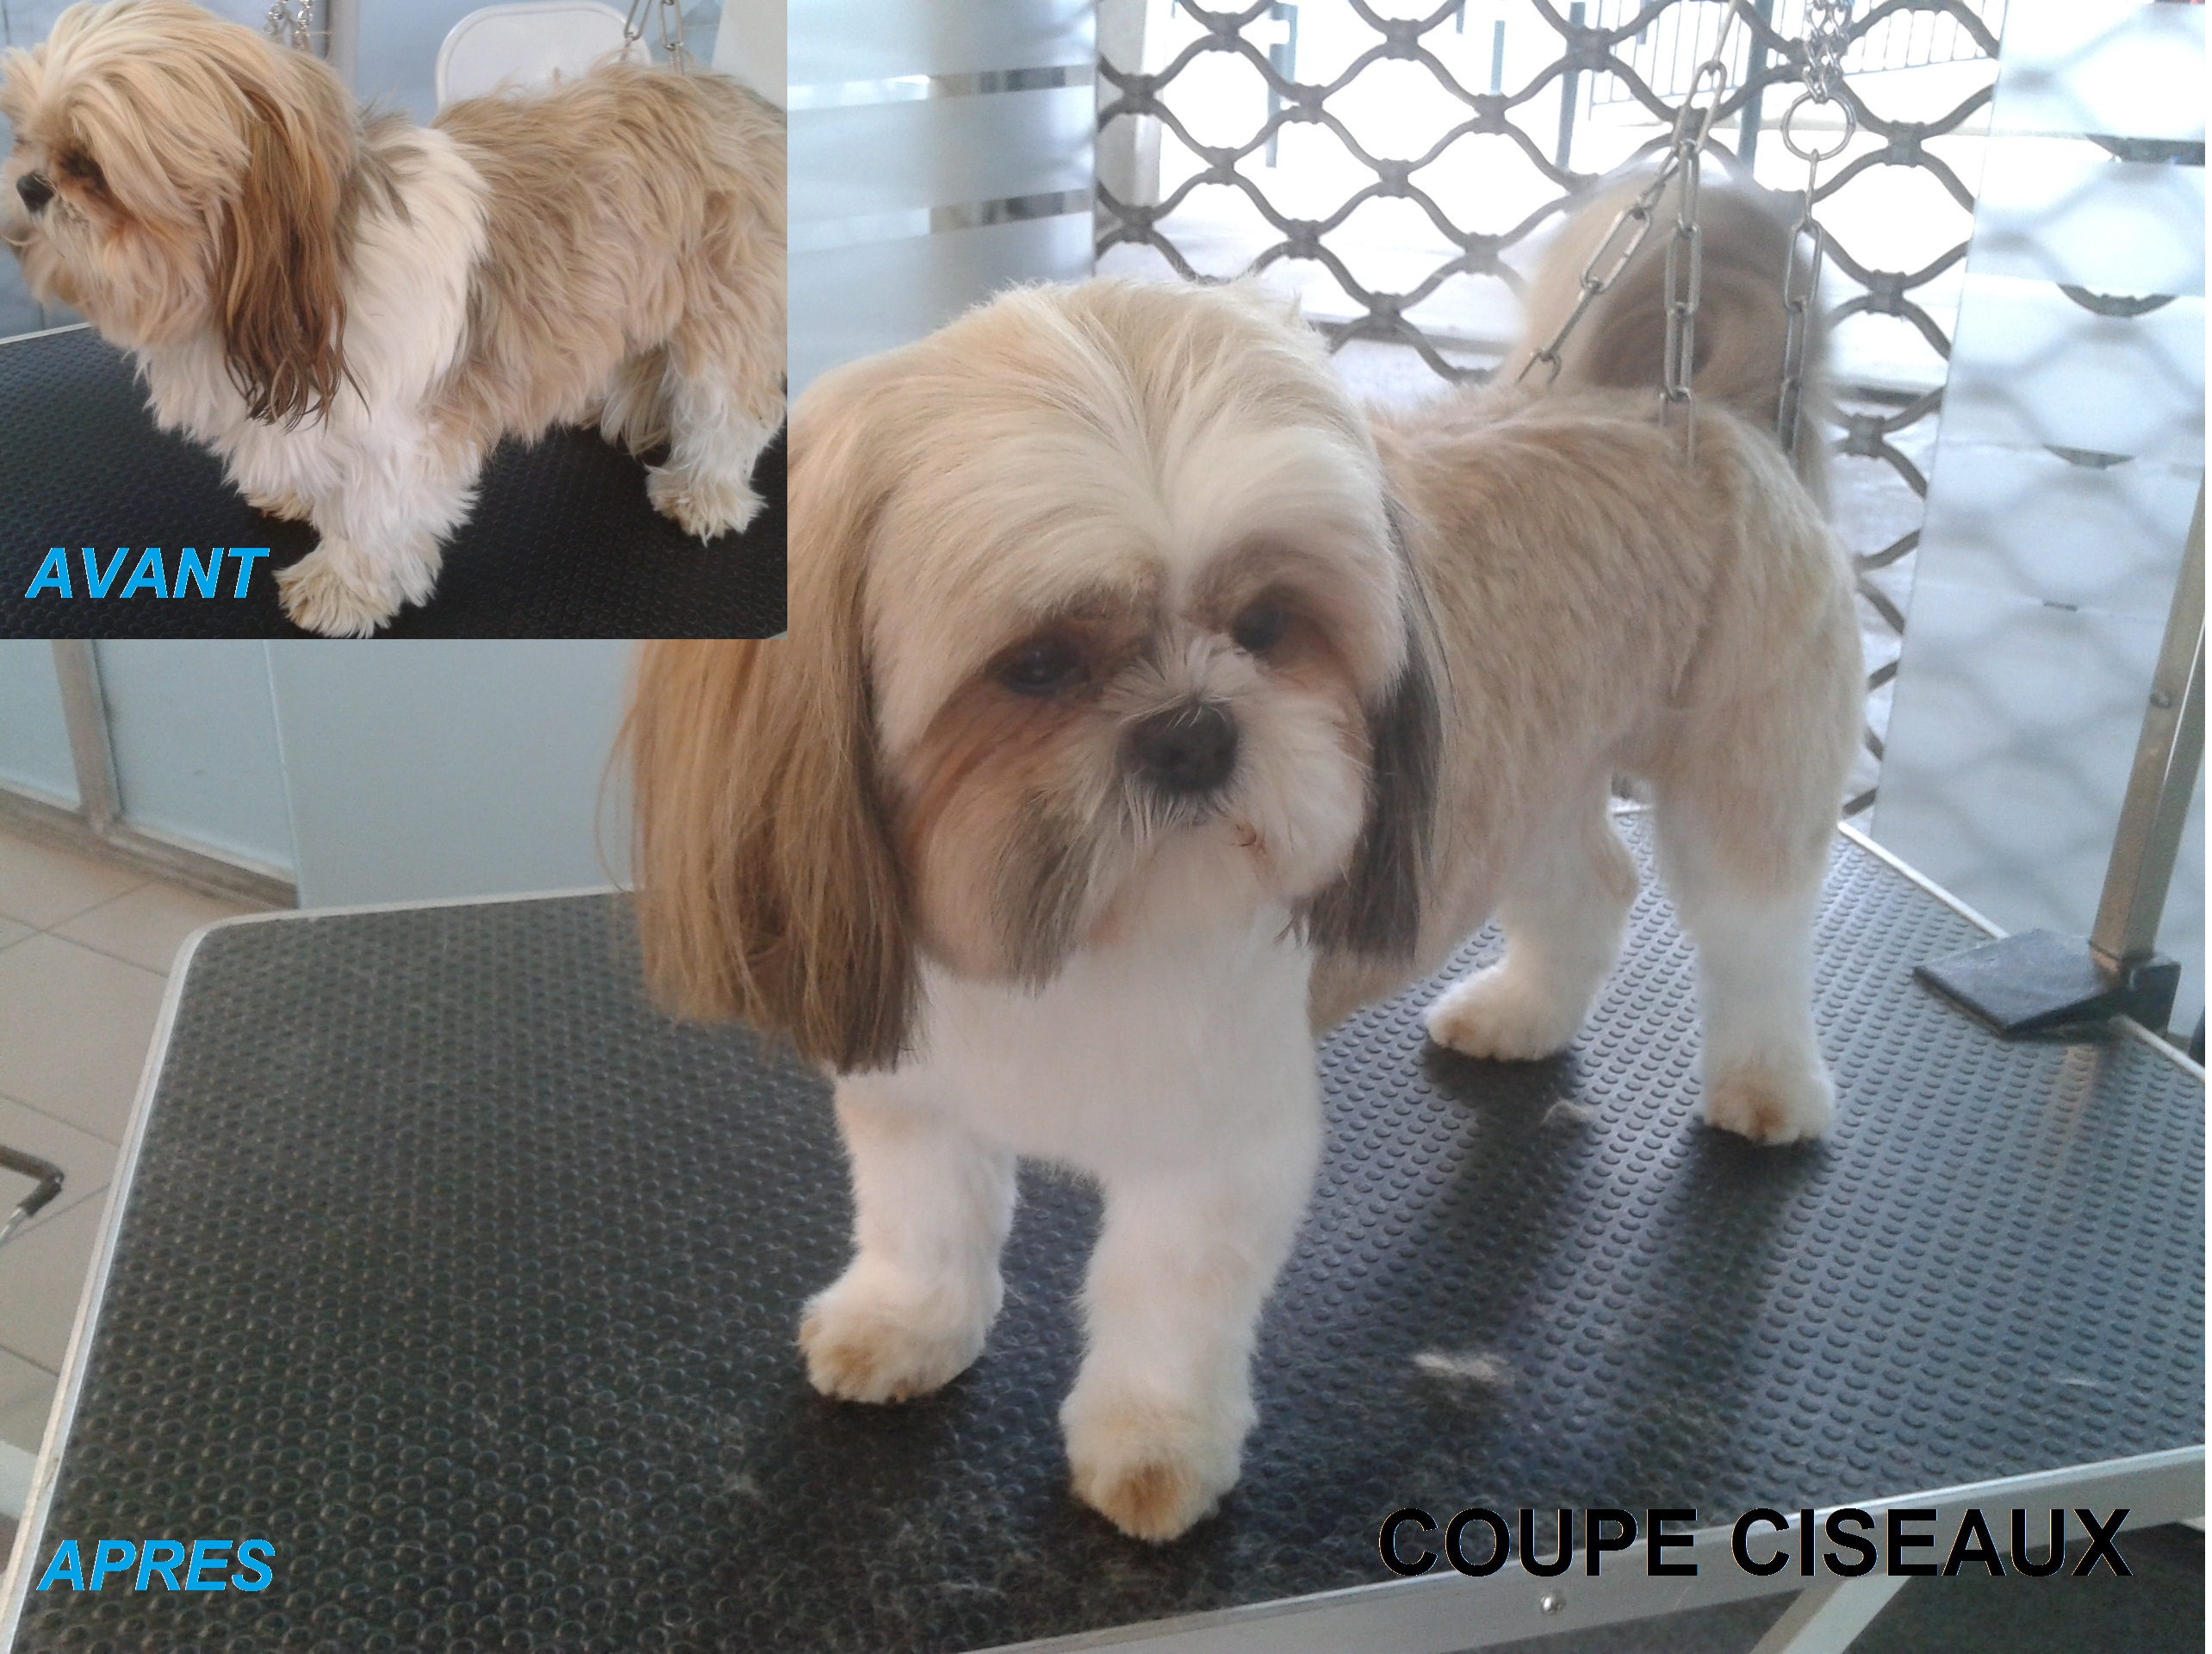 Galerie photos lovely coussi 39 nets - Coupe nounours pour shih tzu ...